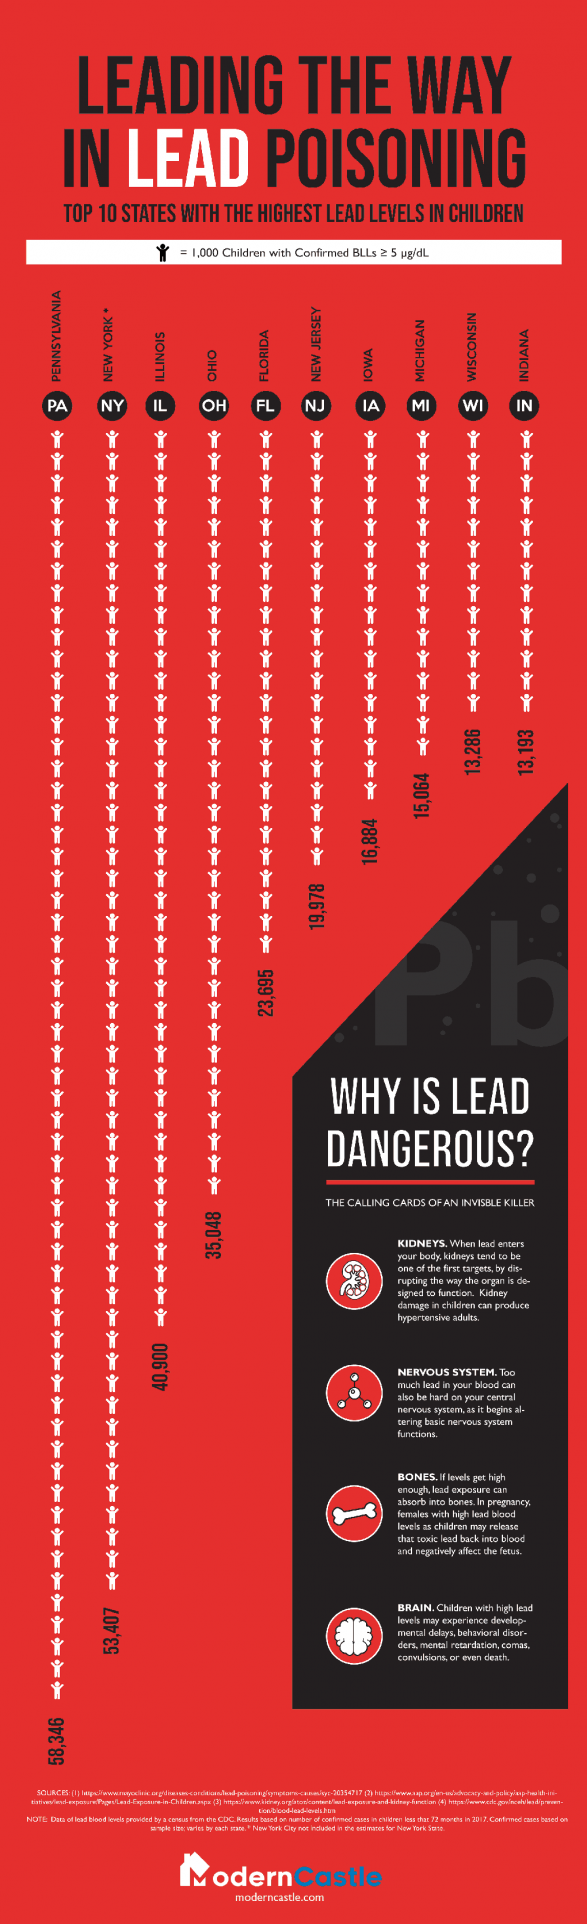 Lead Poisoning: Top 10 States With the Highest Lead Levels in Children